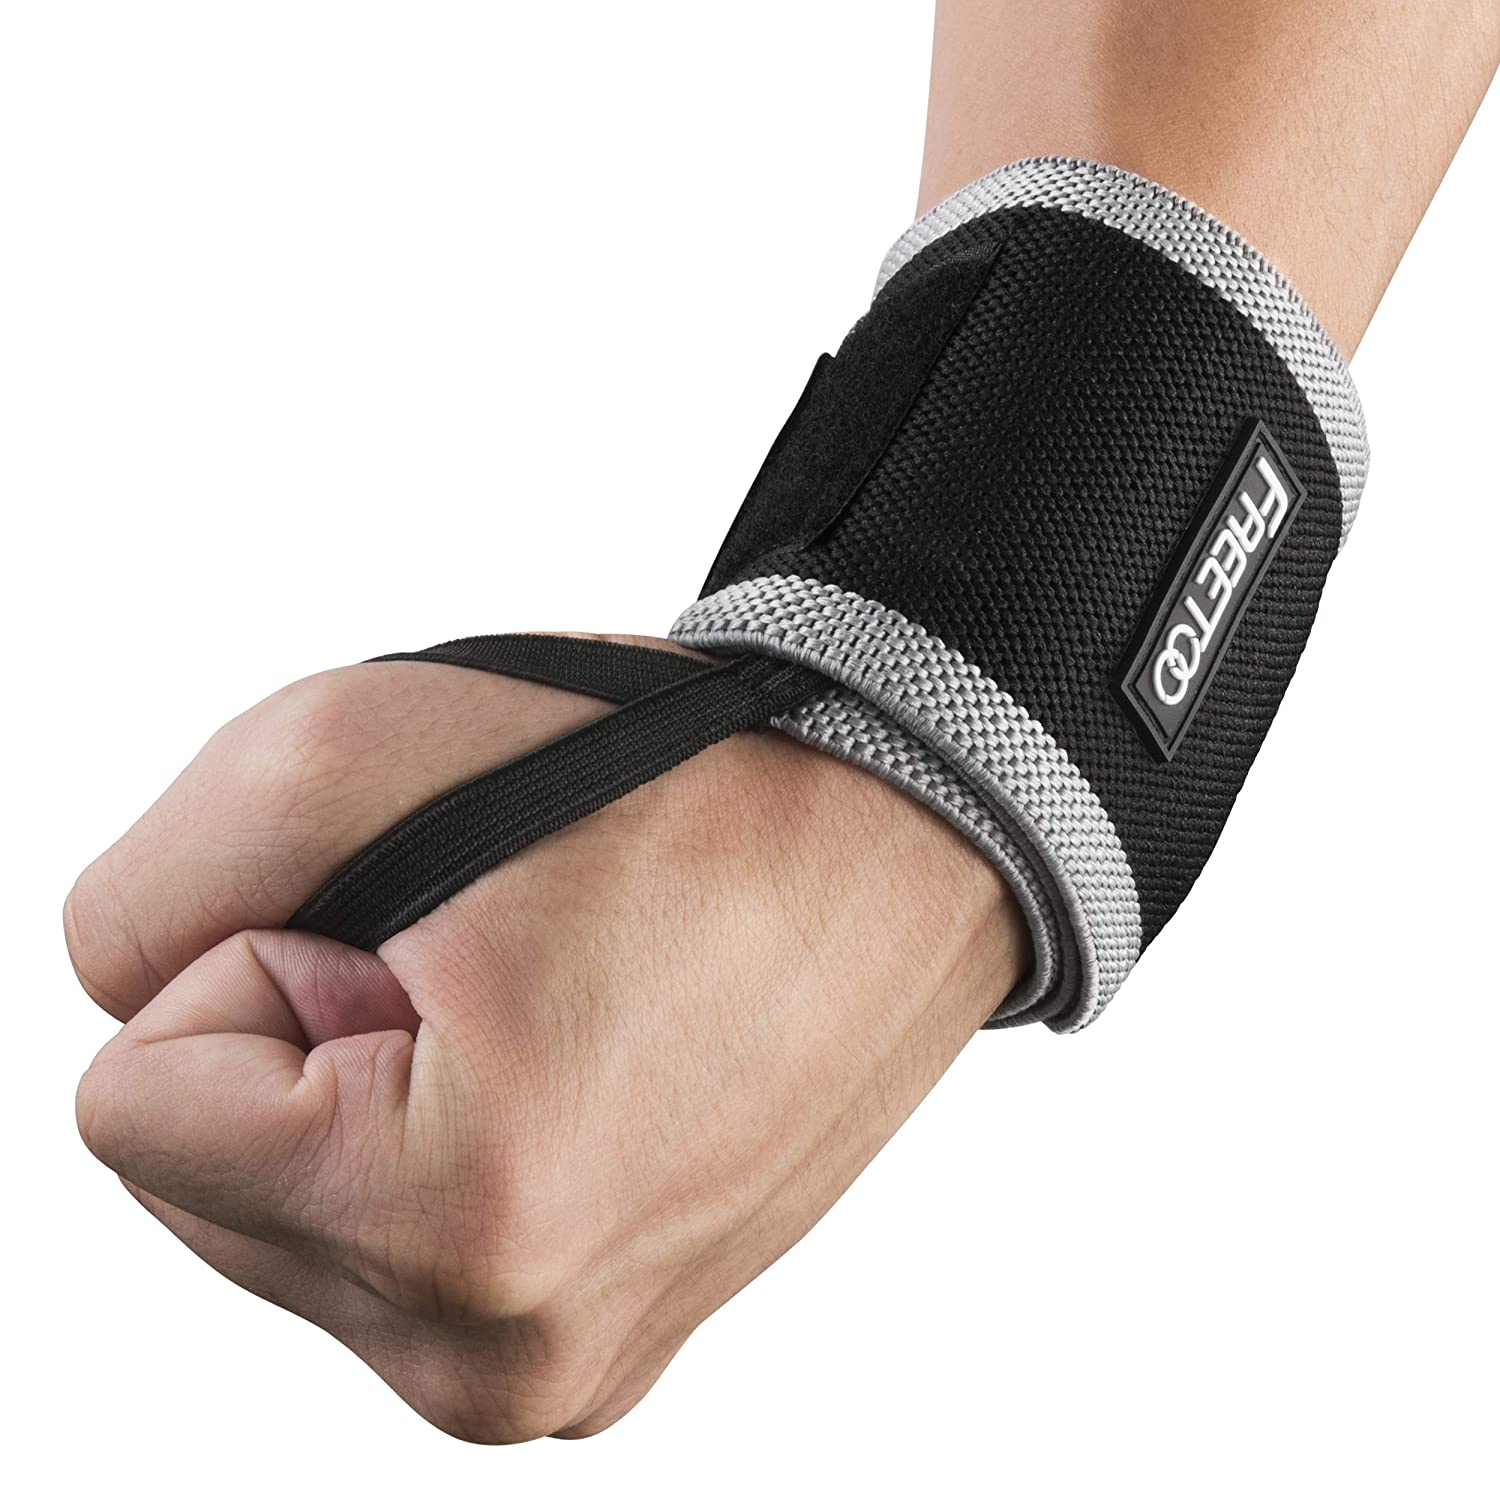 FREETOO Compression Support Wrist Wraps,Bandage Breathable Bracers Provide Wrist Support for Fitness,Bench Press, Weightlifting FREETOO Wrist Brace